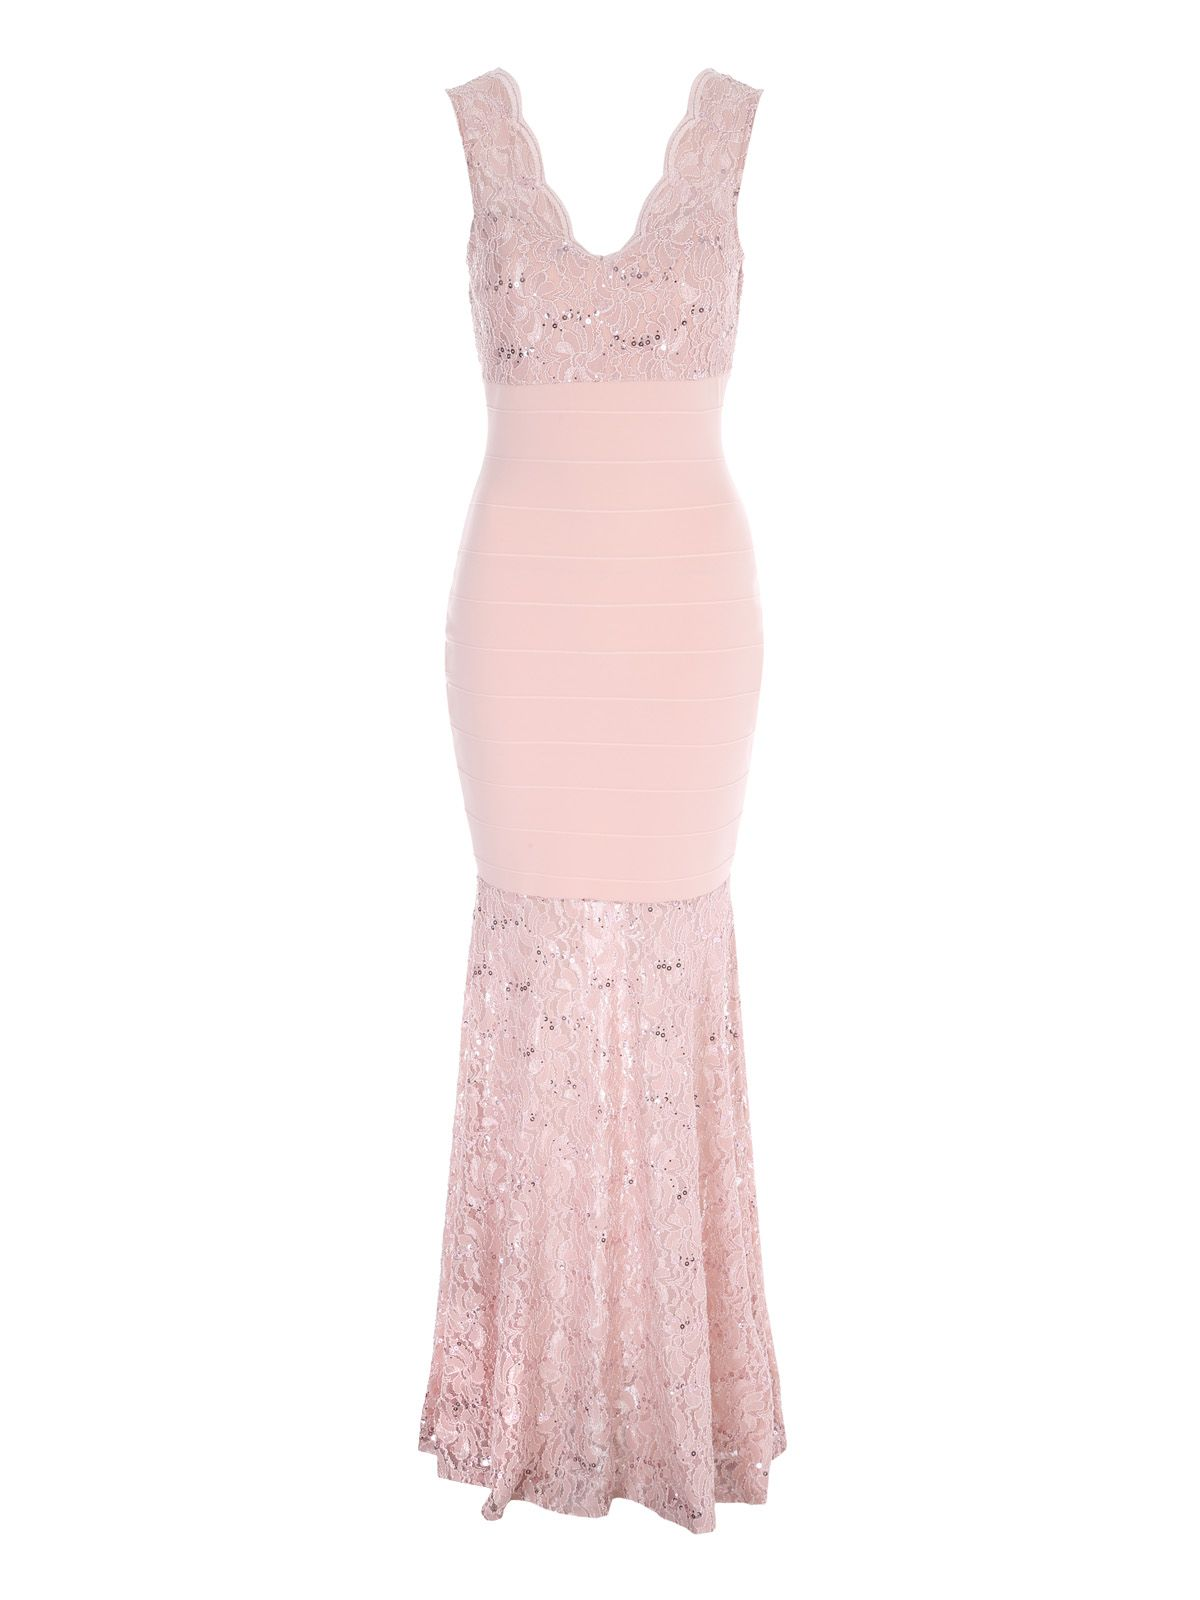 Jane Norman Lace Maxi Bandage Dress, Nude